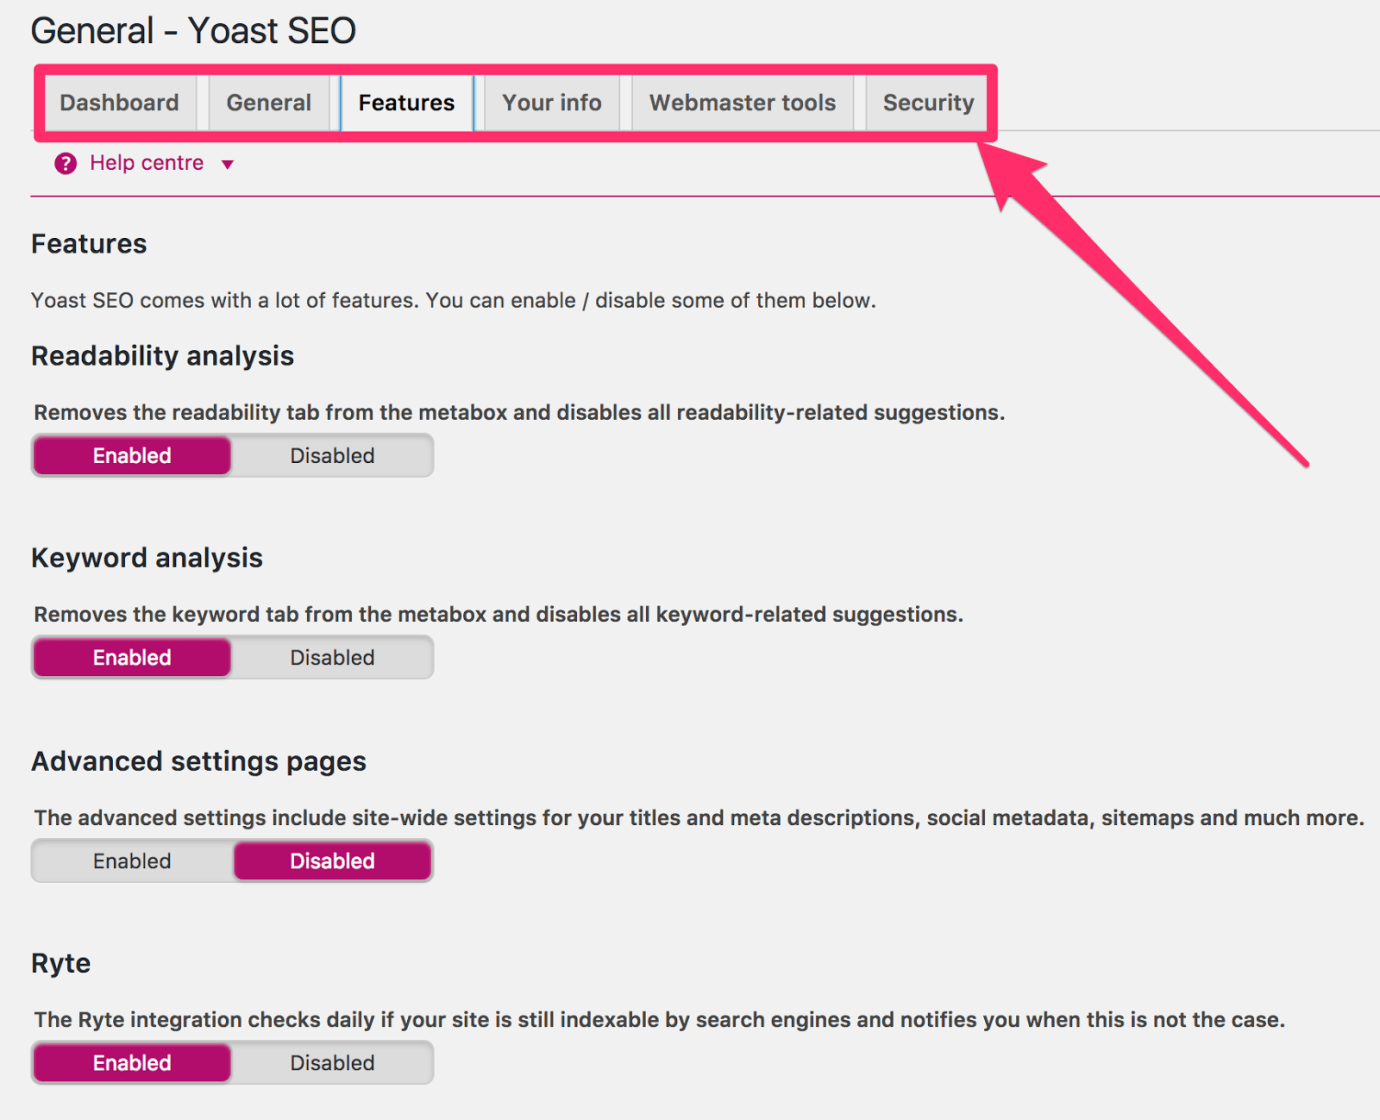 General Yoast SEO Business Marketing Writer Blogger WordPress